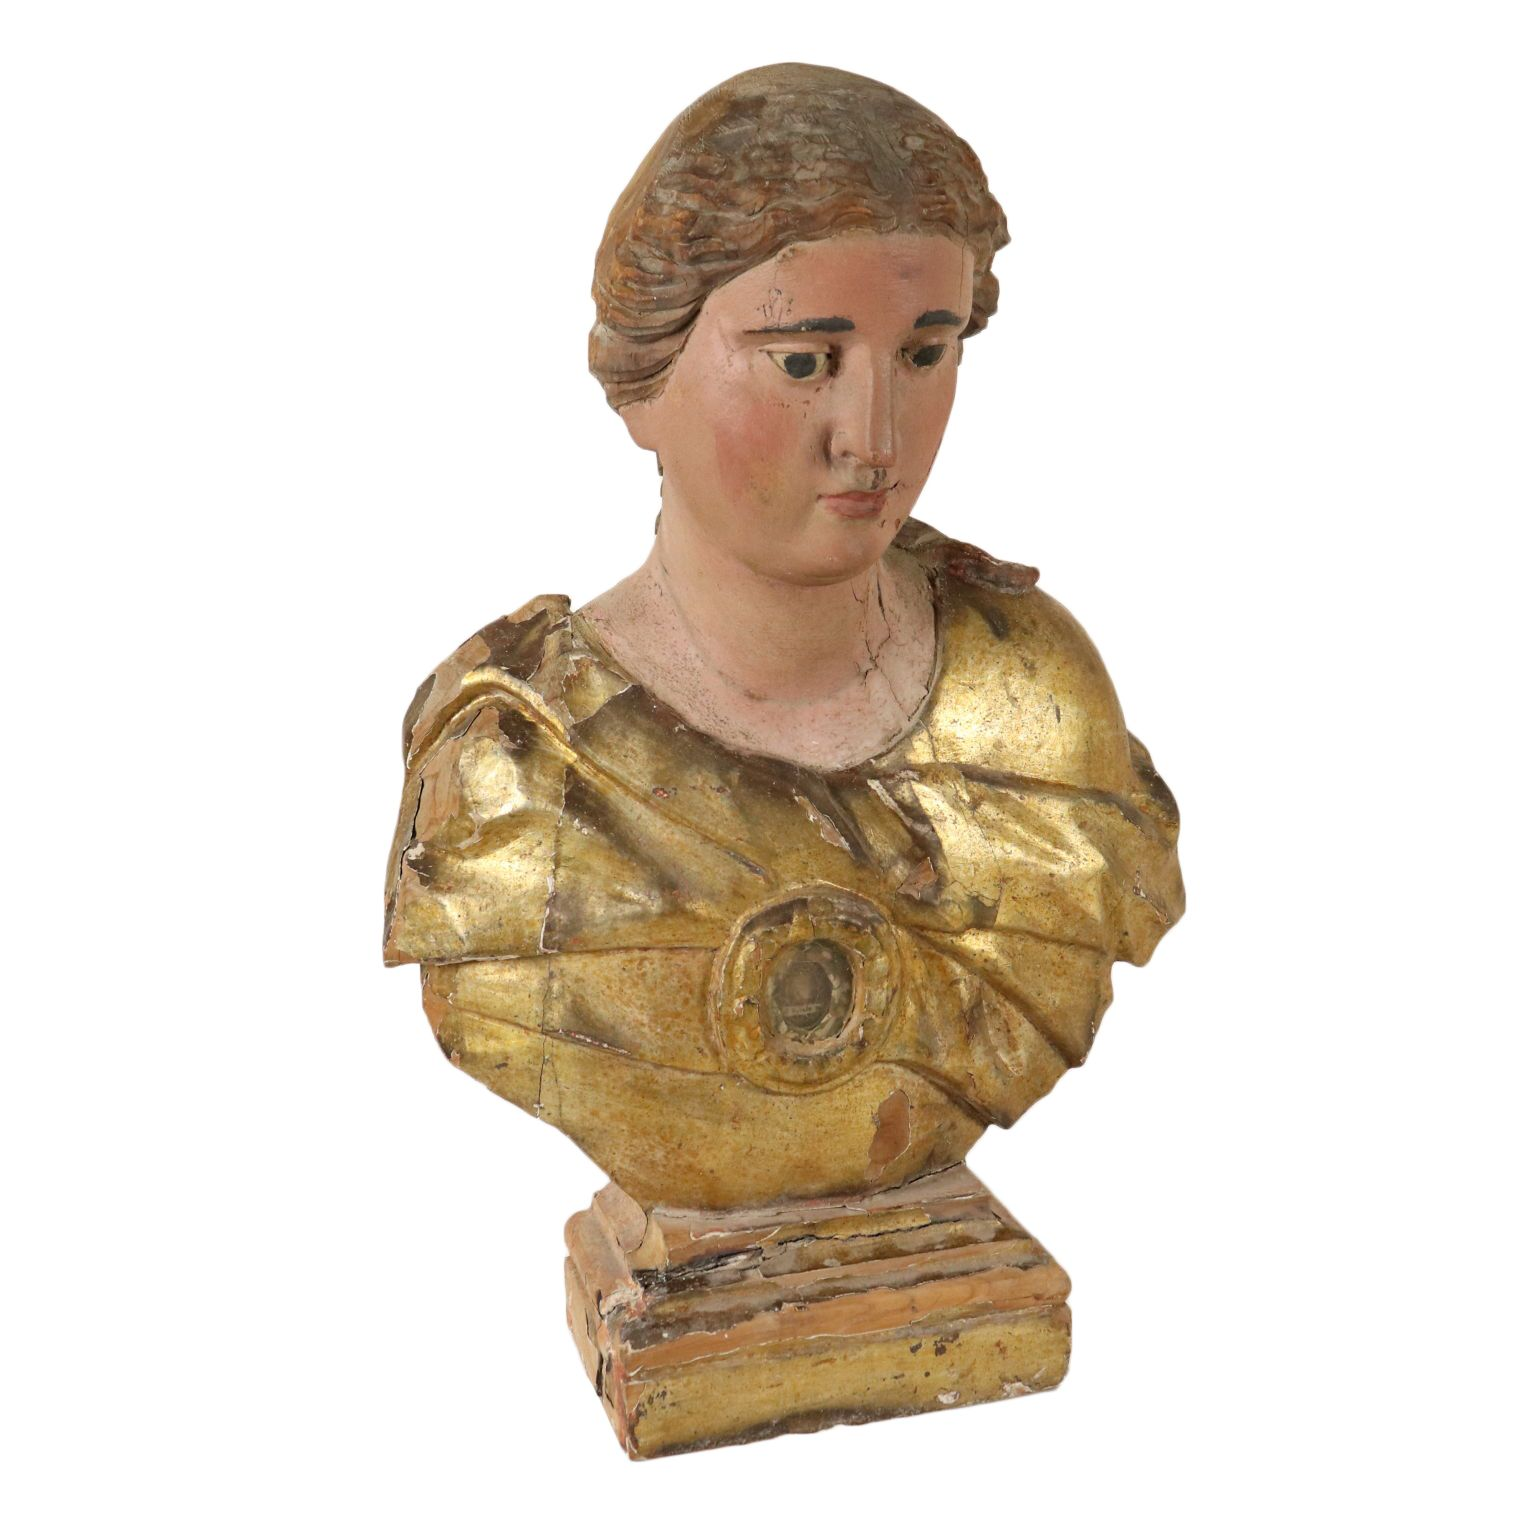 Reliquary Bust Gilded Lacquered Wood Italy Late 1600s